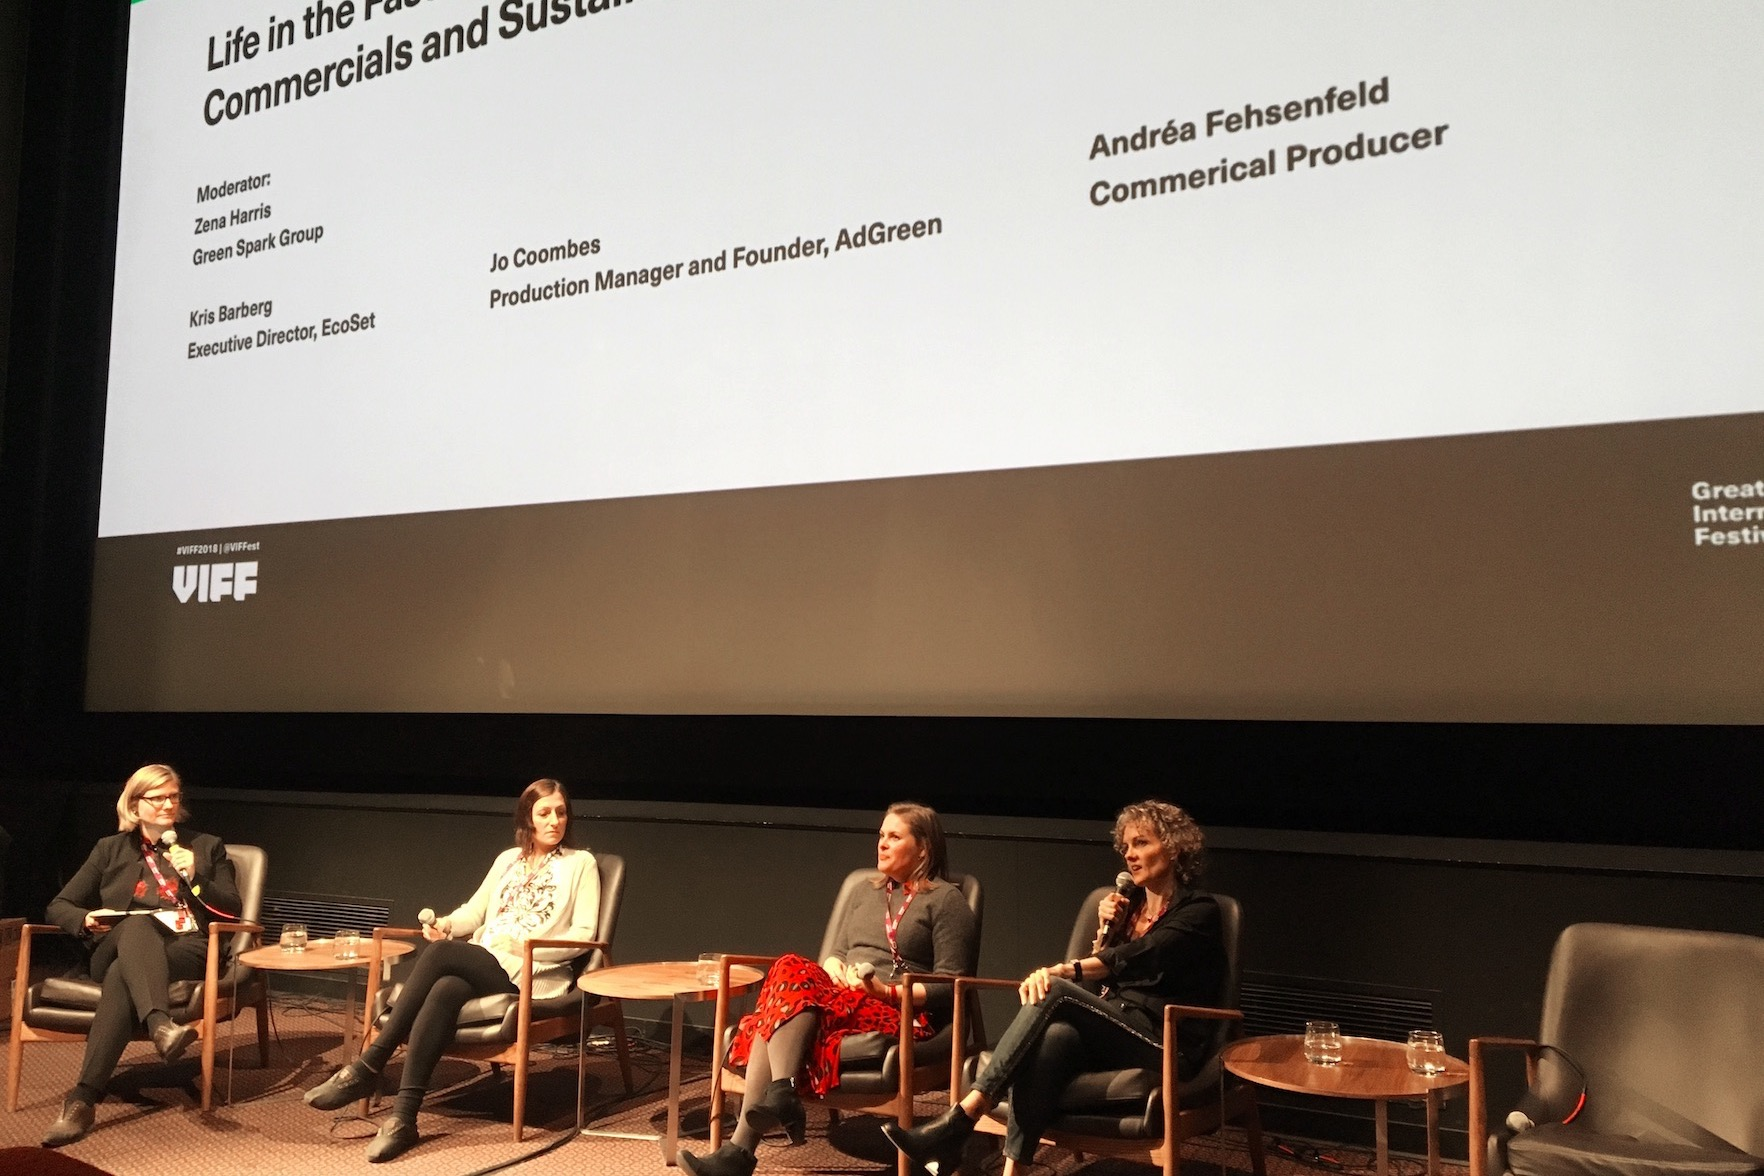 Commercials and Sustainable Production at VIFF's Sustainable Production Forum